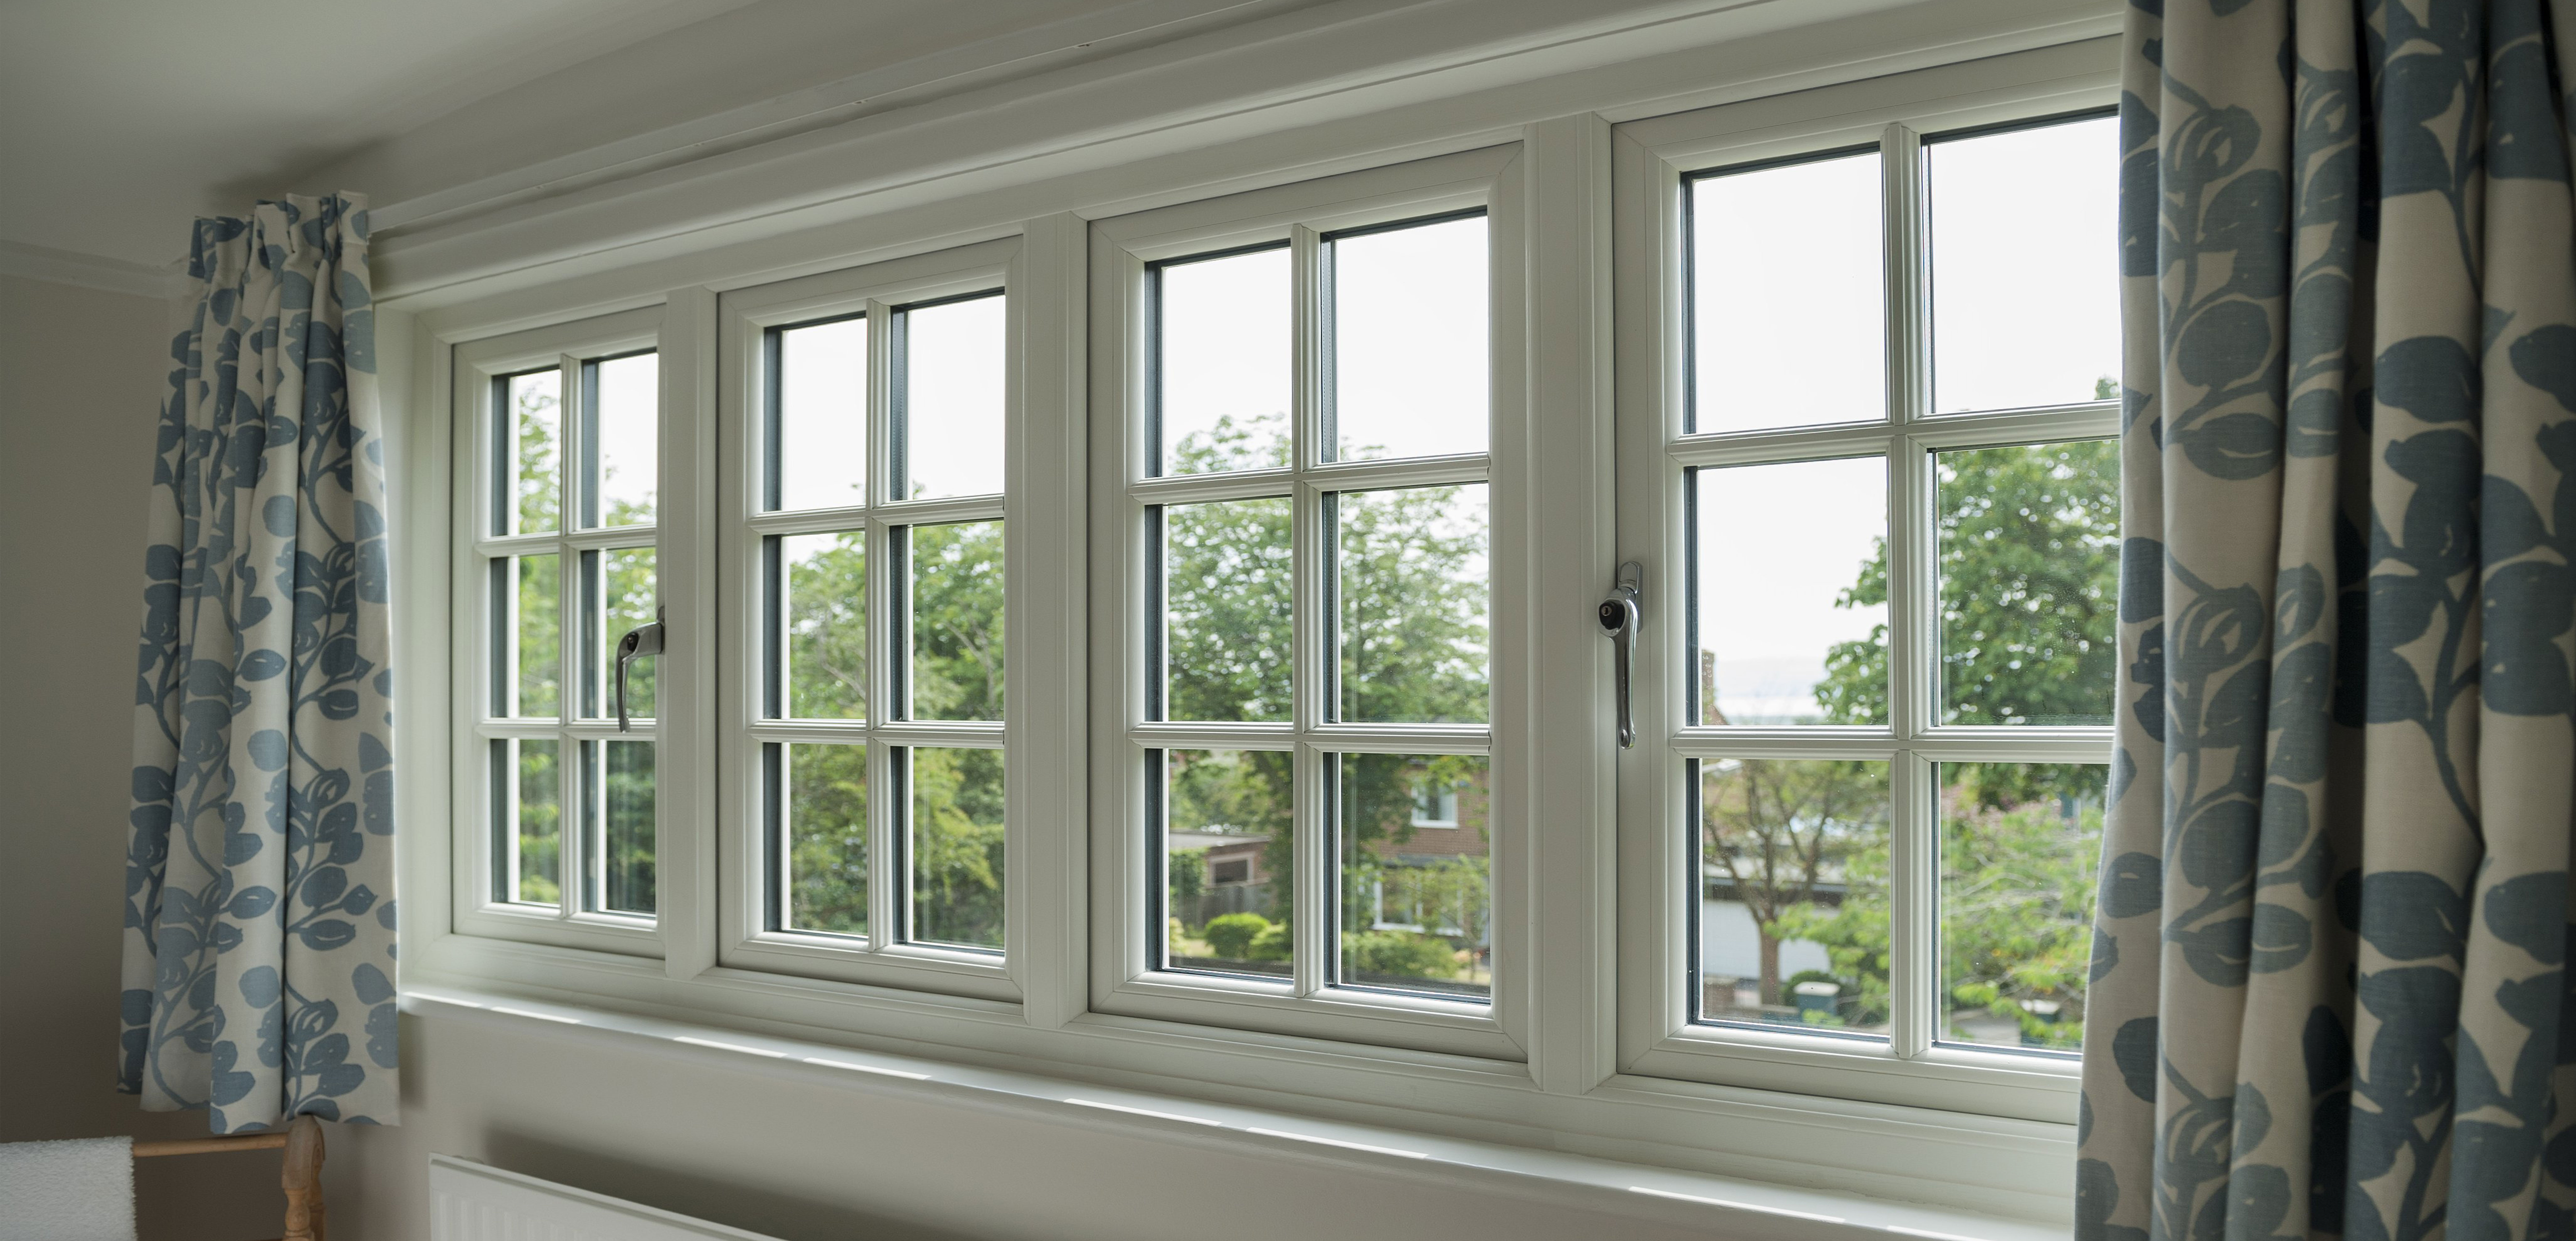 Upvc windows derby kedleston free online quote for House windows online